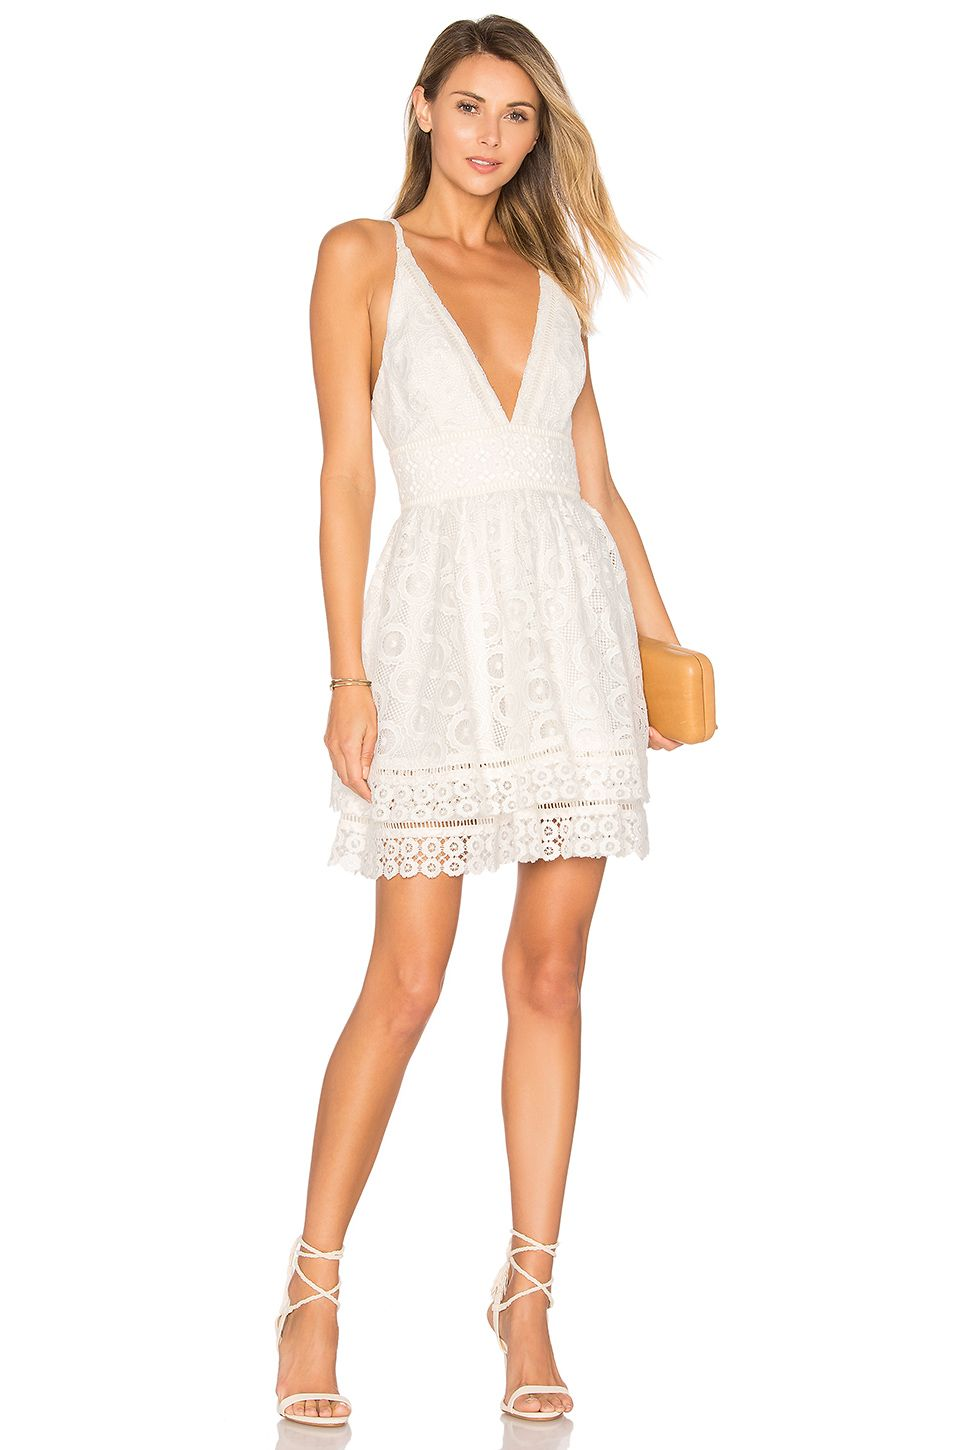 Lovers Friends Moon Dance Dress In Ivory White Lace Cocktail Dress Fit Flare Cocktail Dress Cocktail Dresses With Sleeves